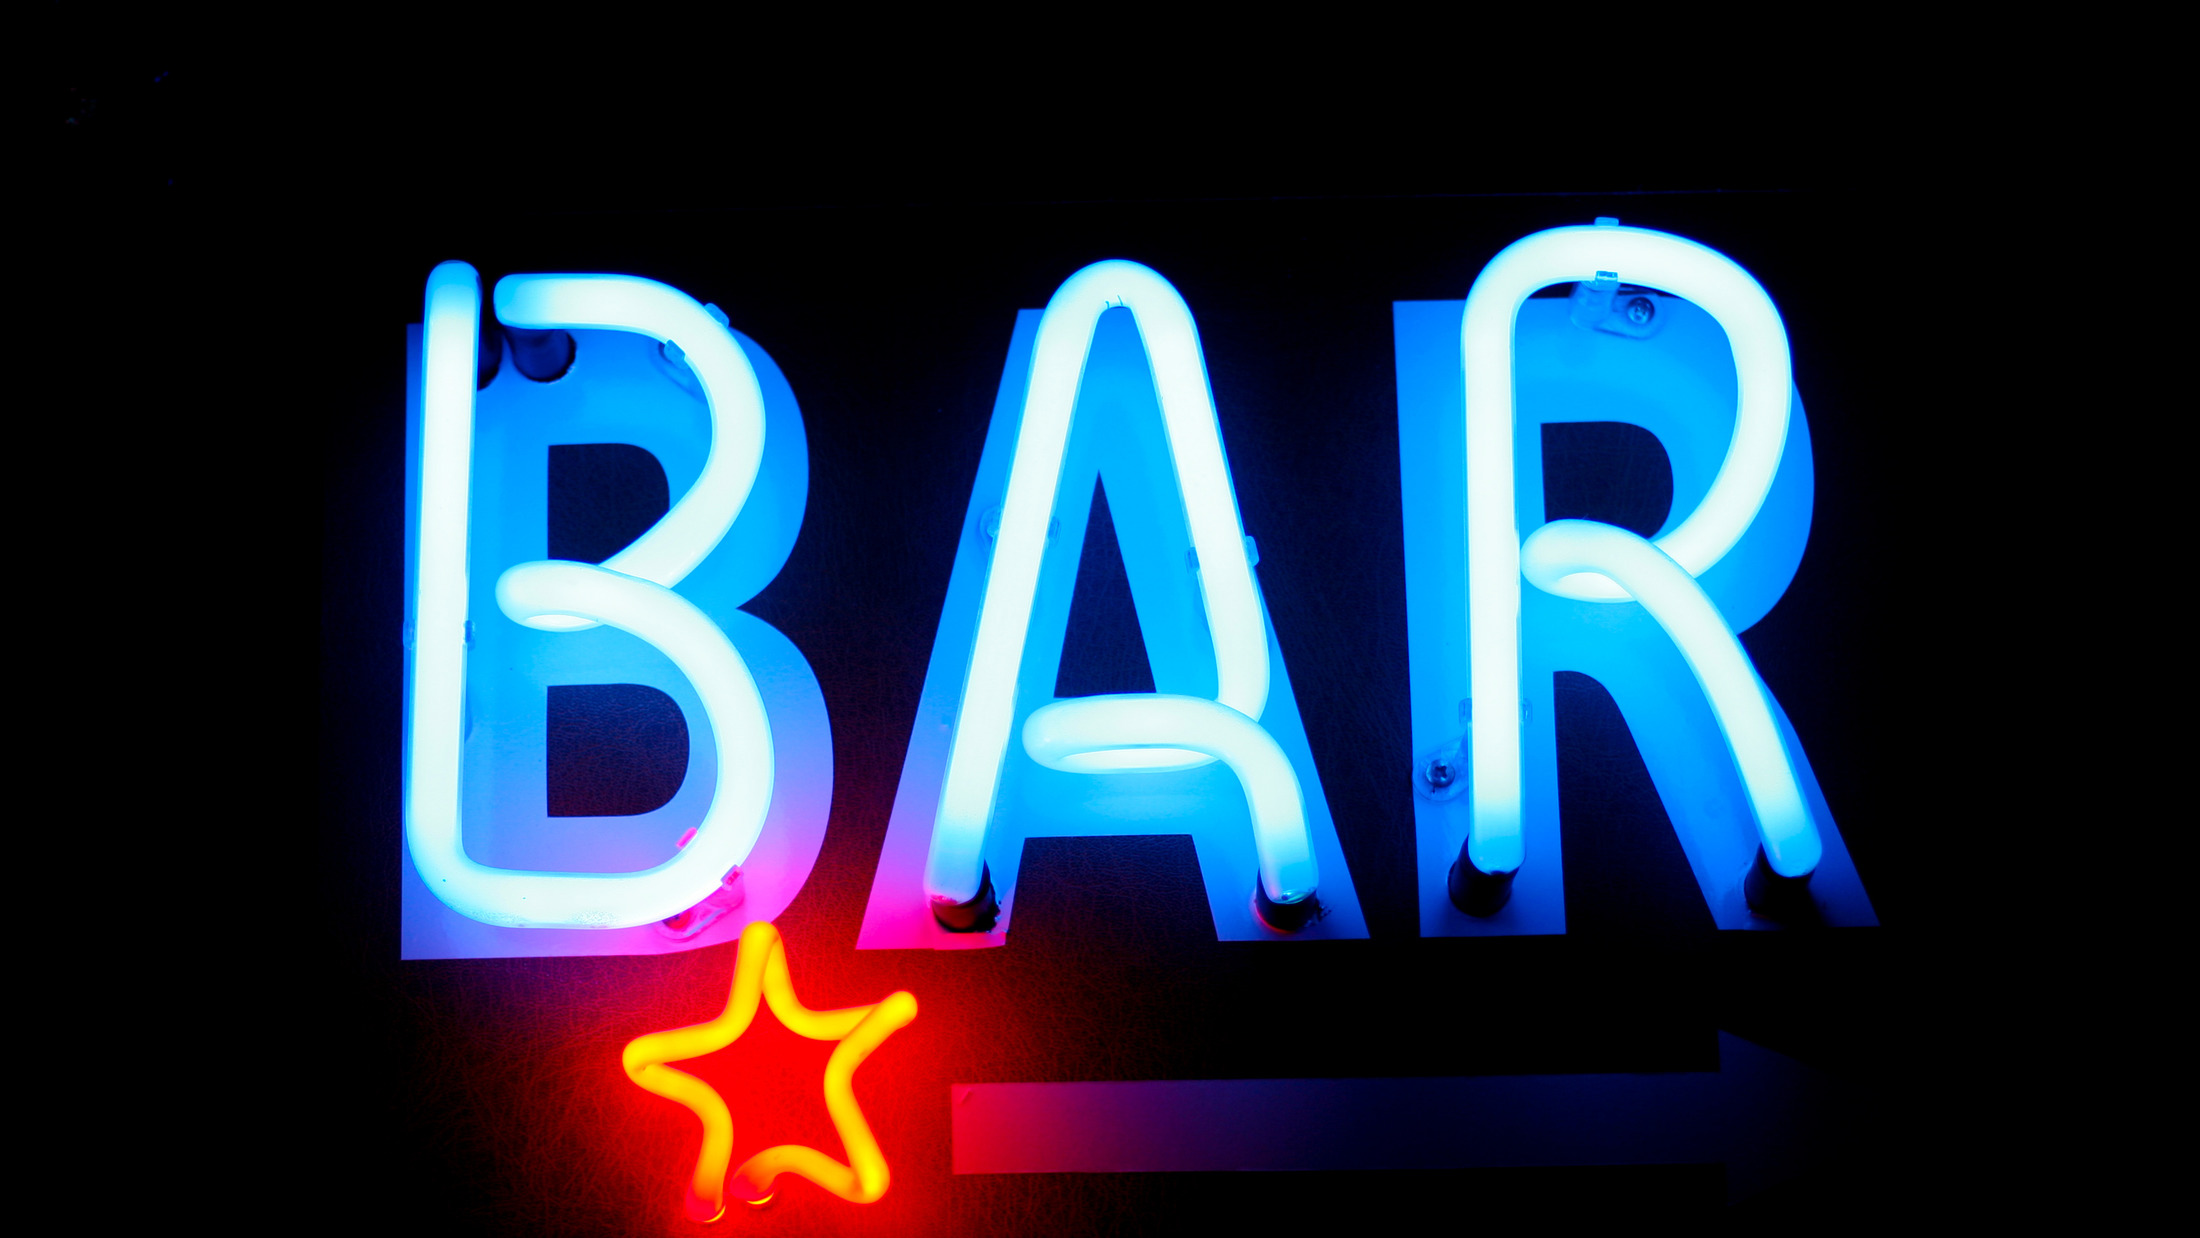 300063_bar-sign_shutterstock_8701033-Hybris